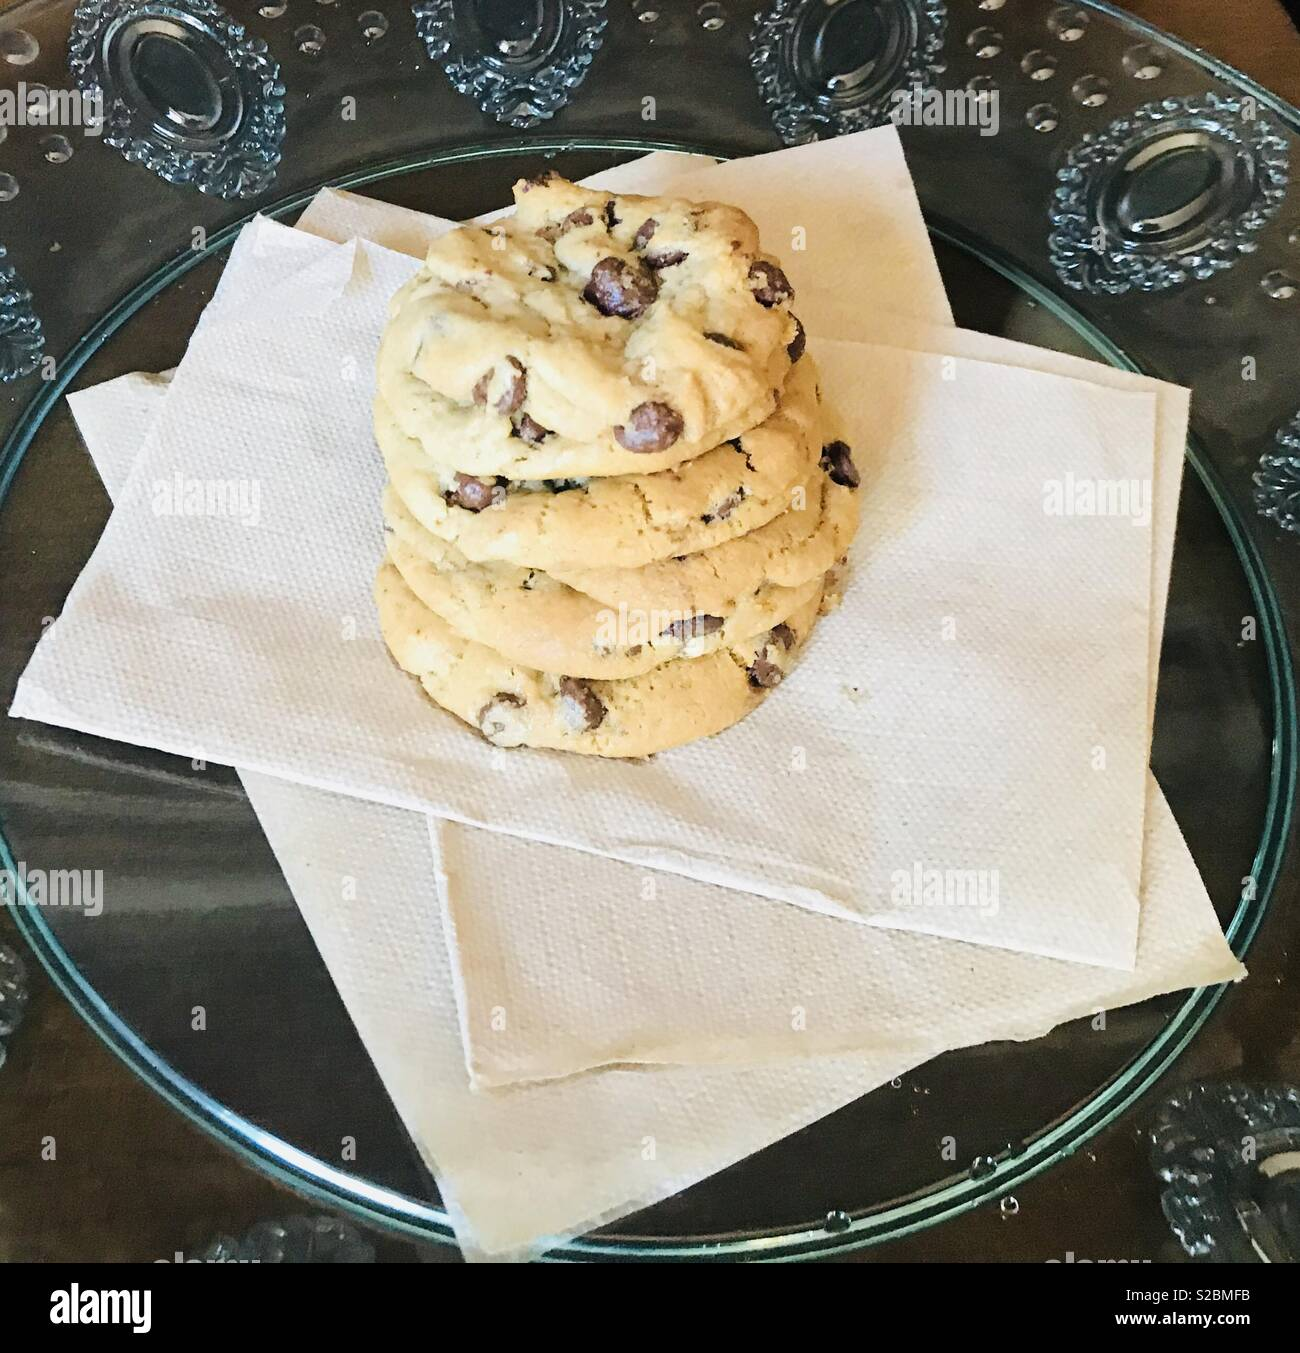 Beautiful And Yummy Delicious Chocolate Chip Cookies Sitting On A